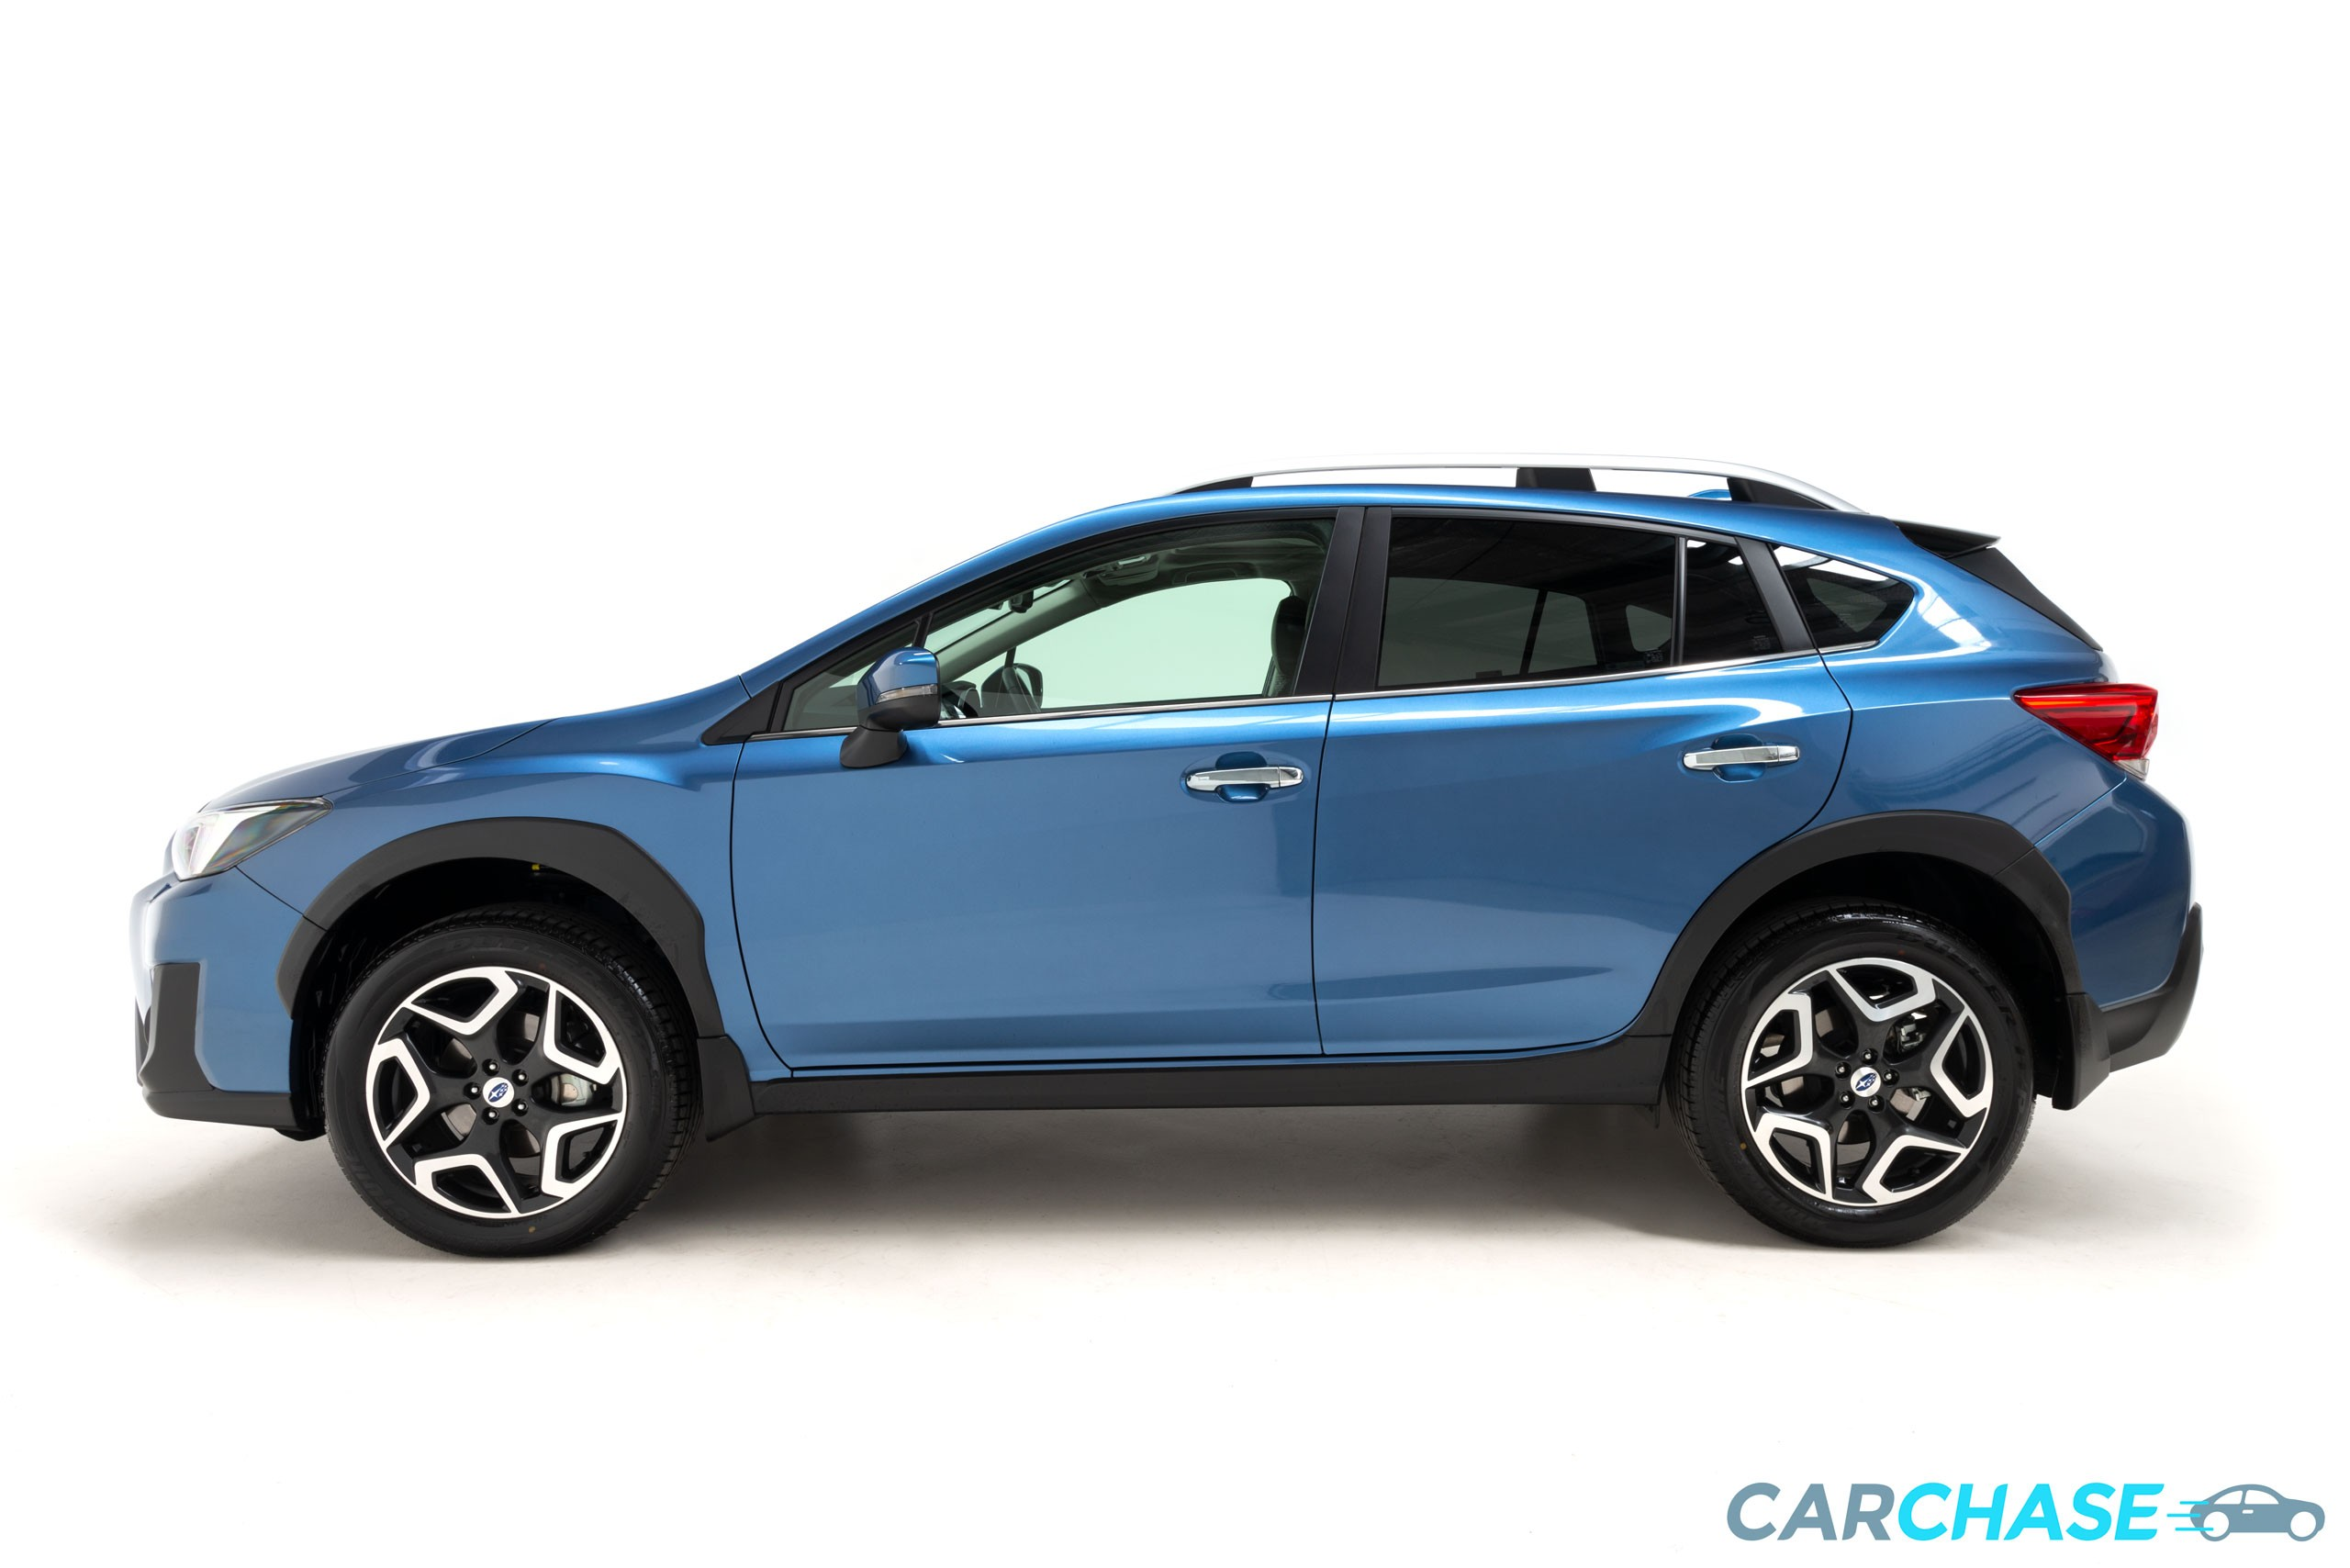 Image of left profile of 2018 Subaru XV 2.0i-S